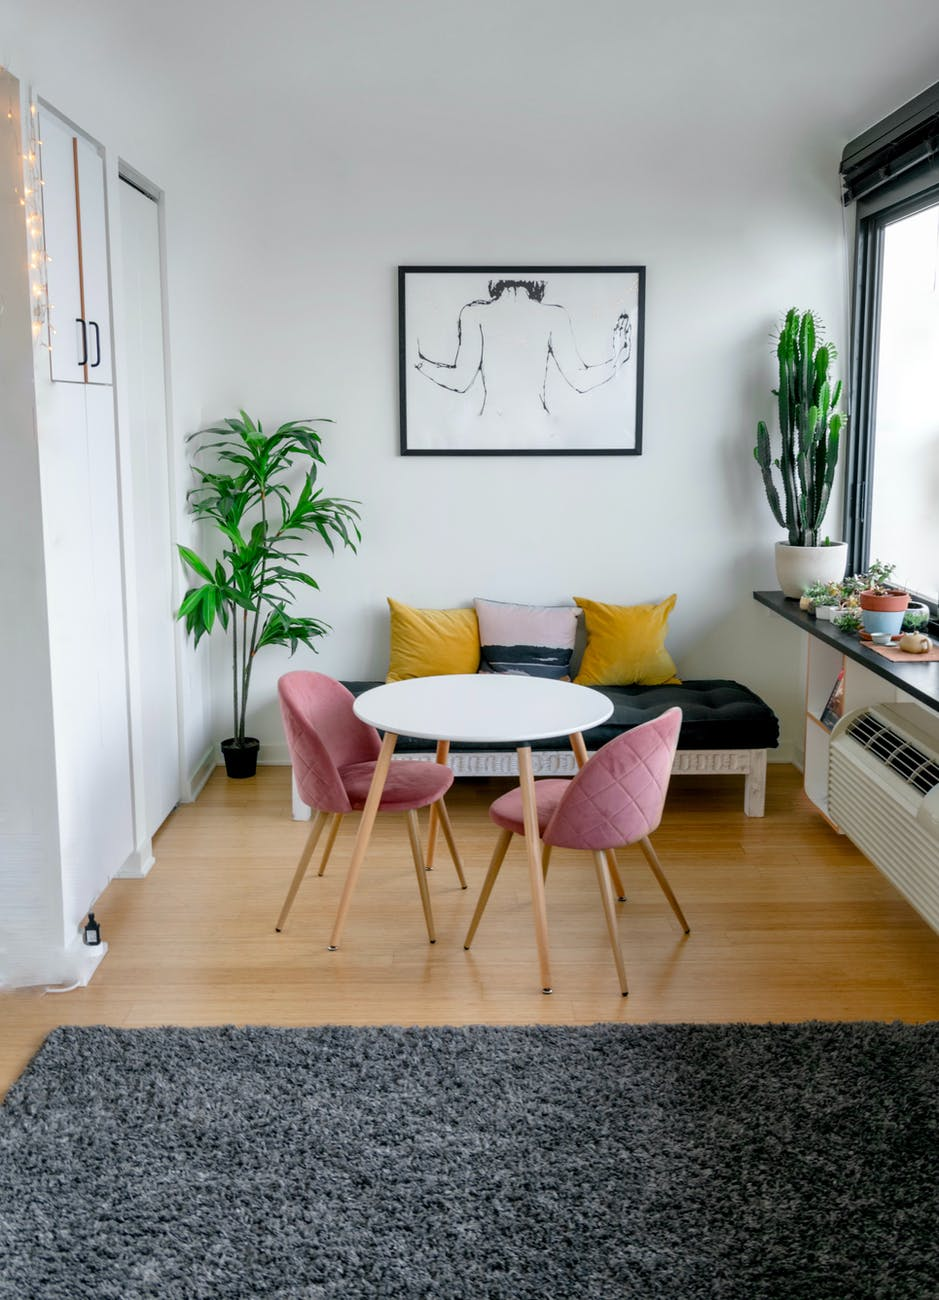 contemporary room interior with furniture and carpet on floor